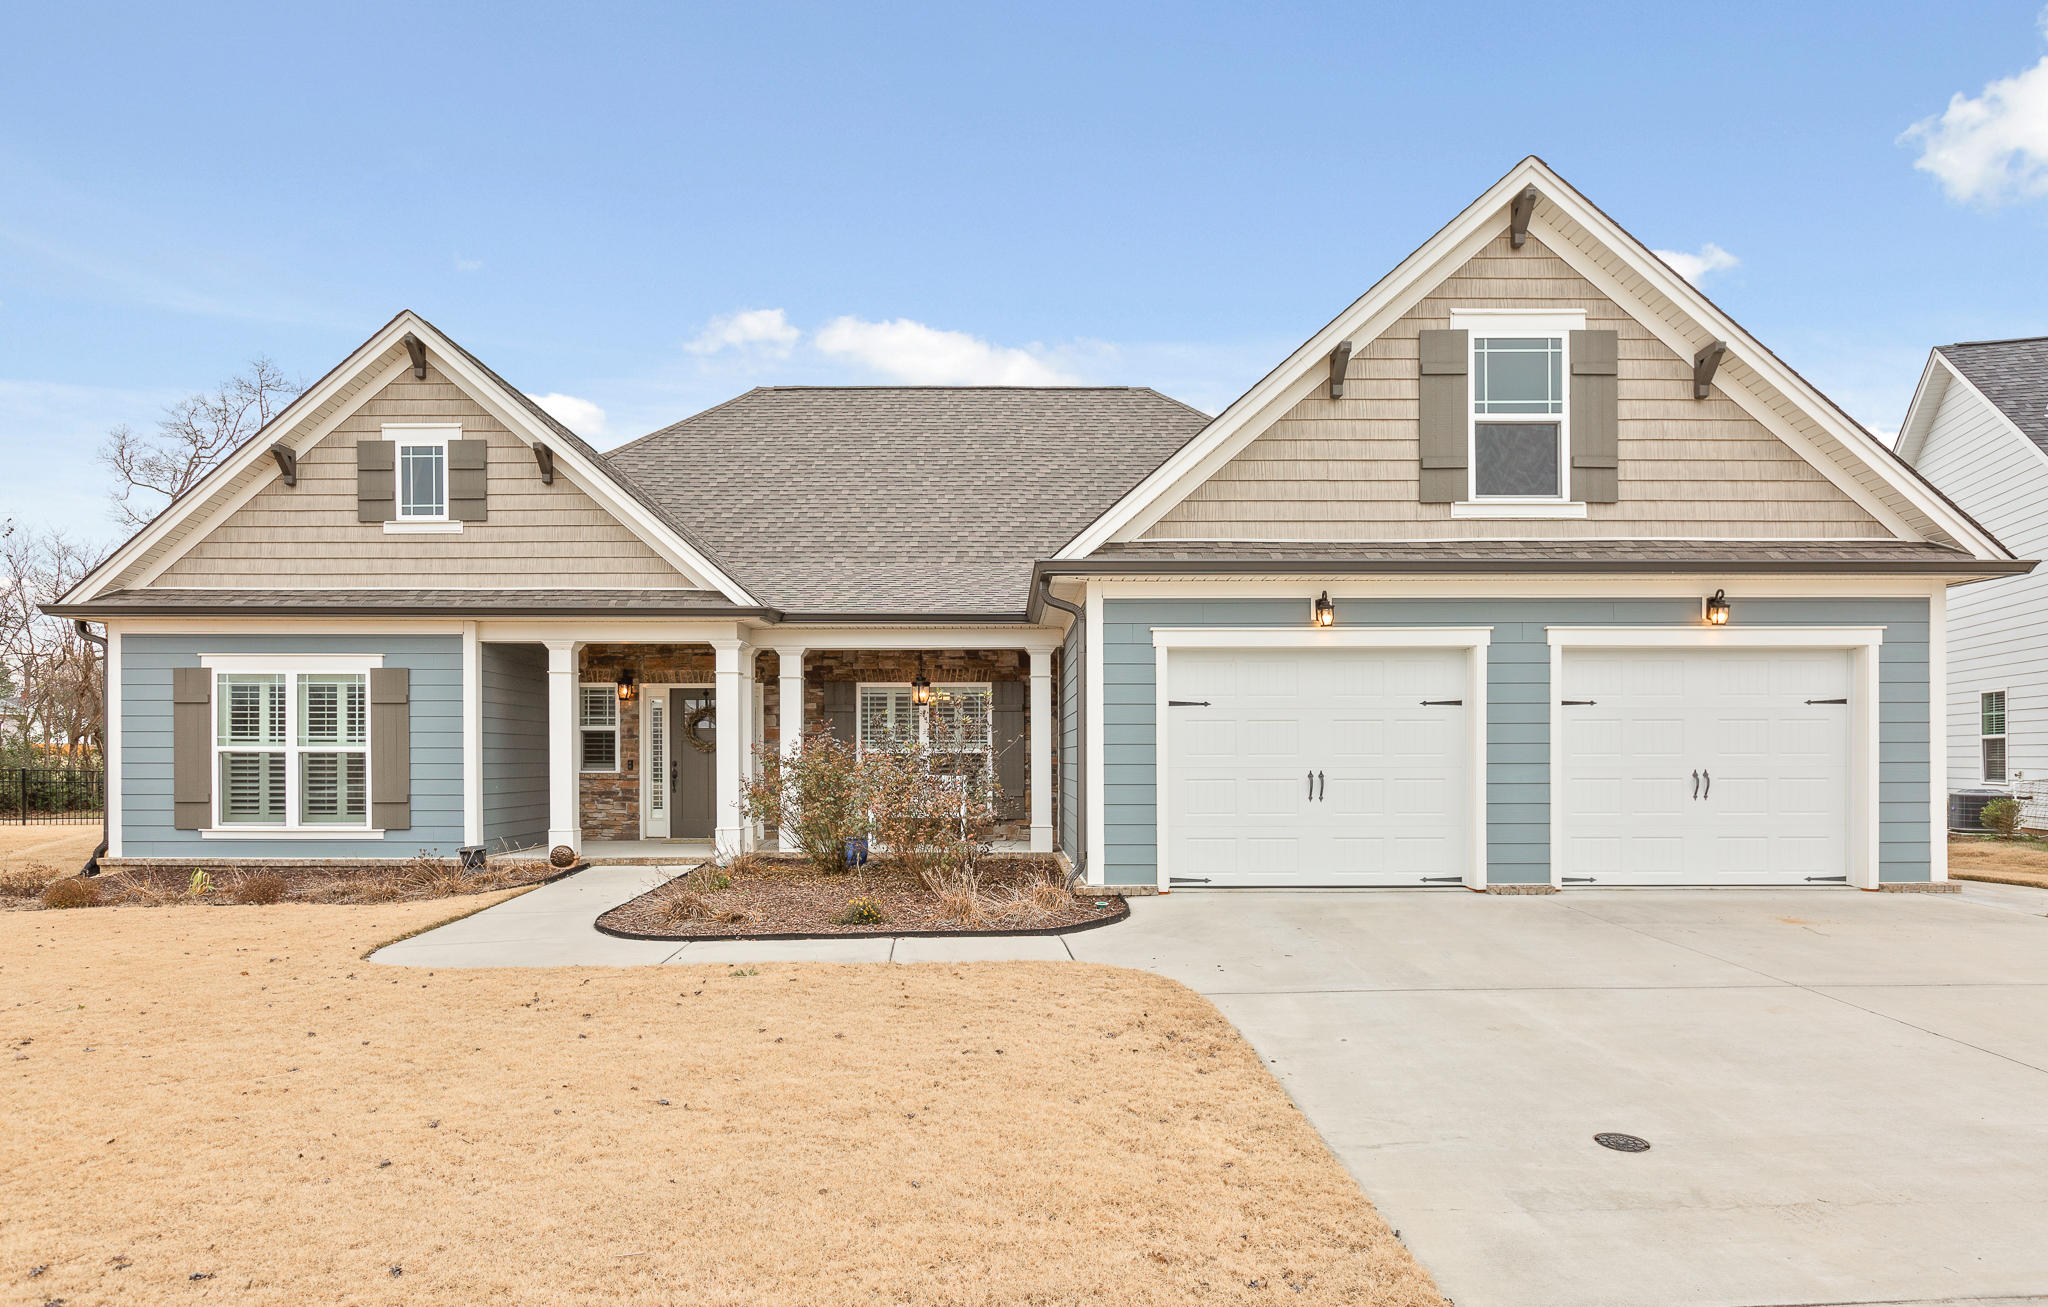 8503 River Birch Loop, Ooltewah, TN 37363